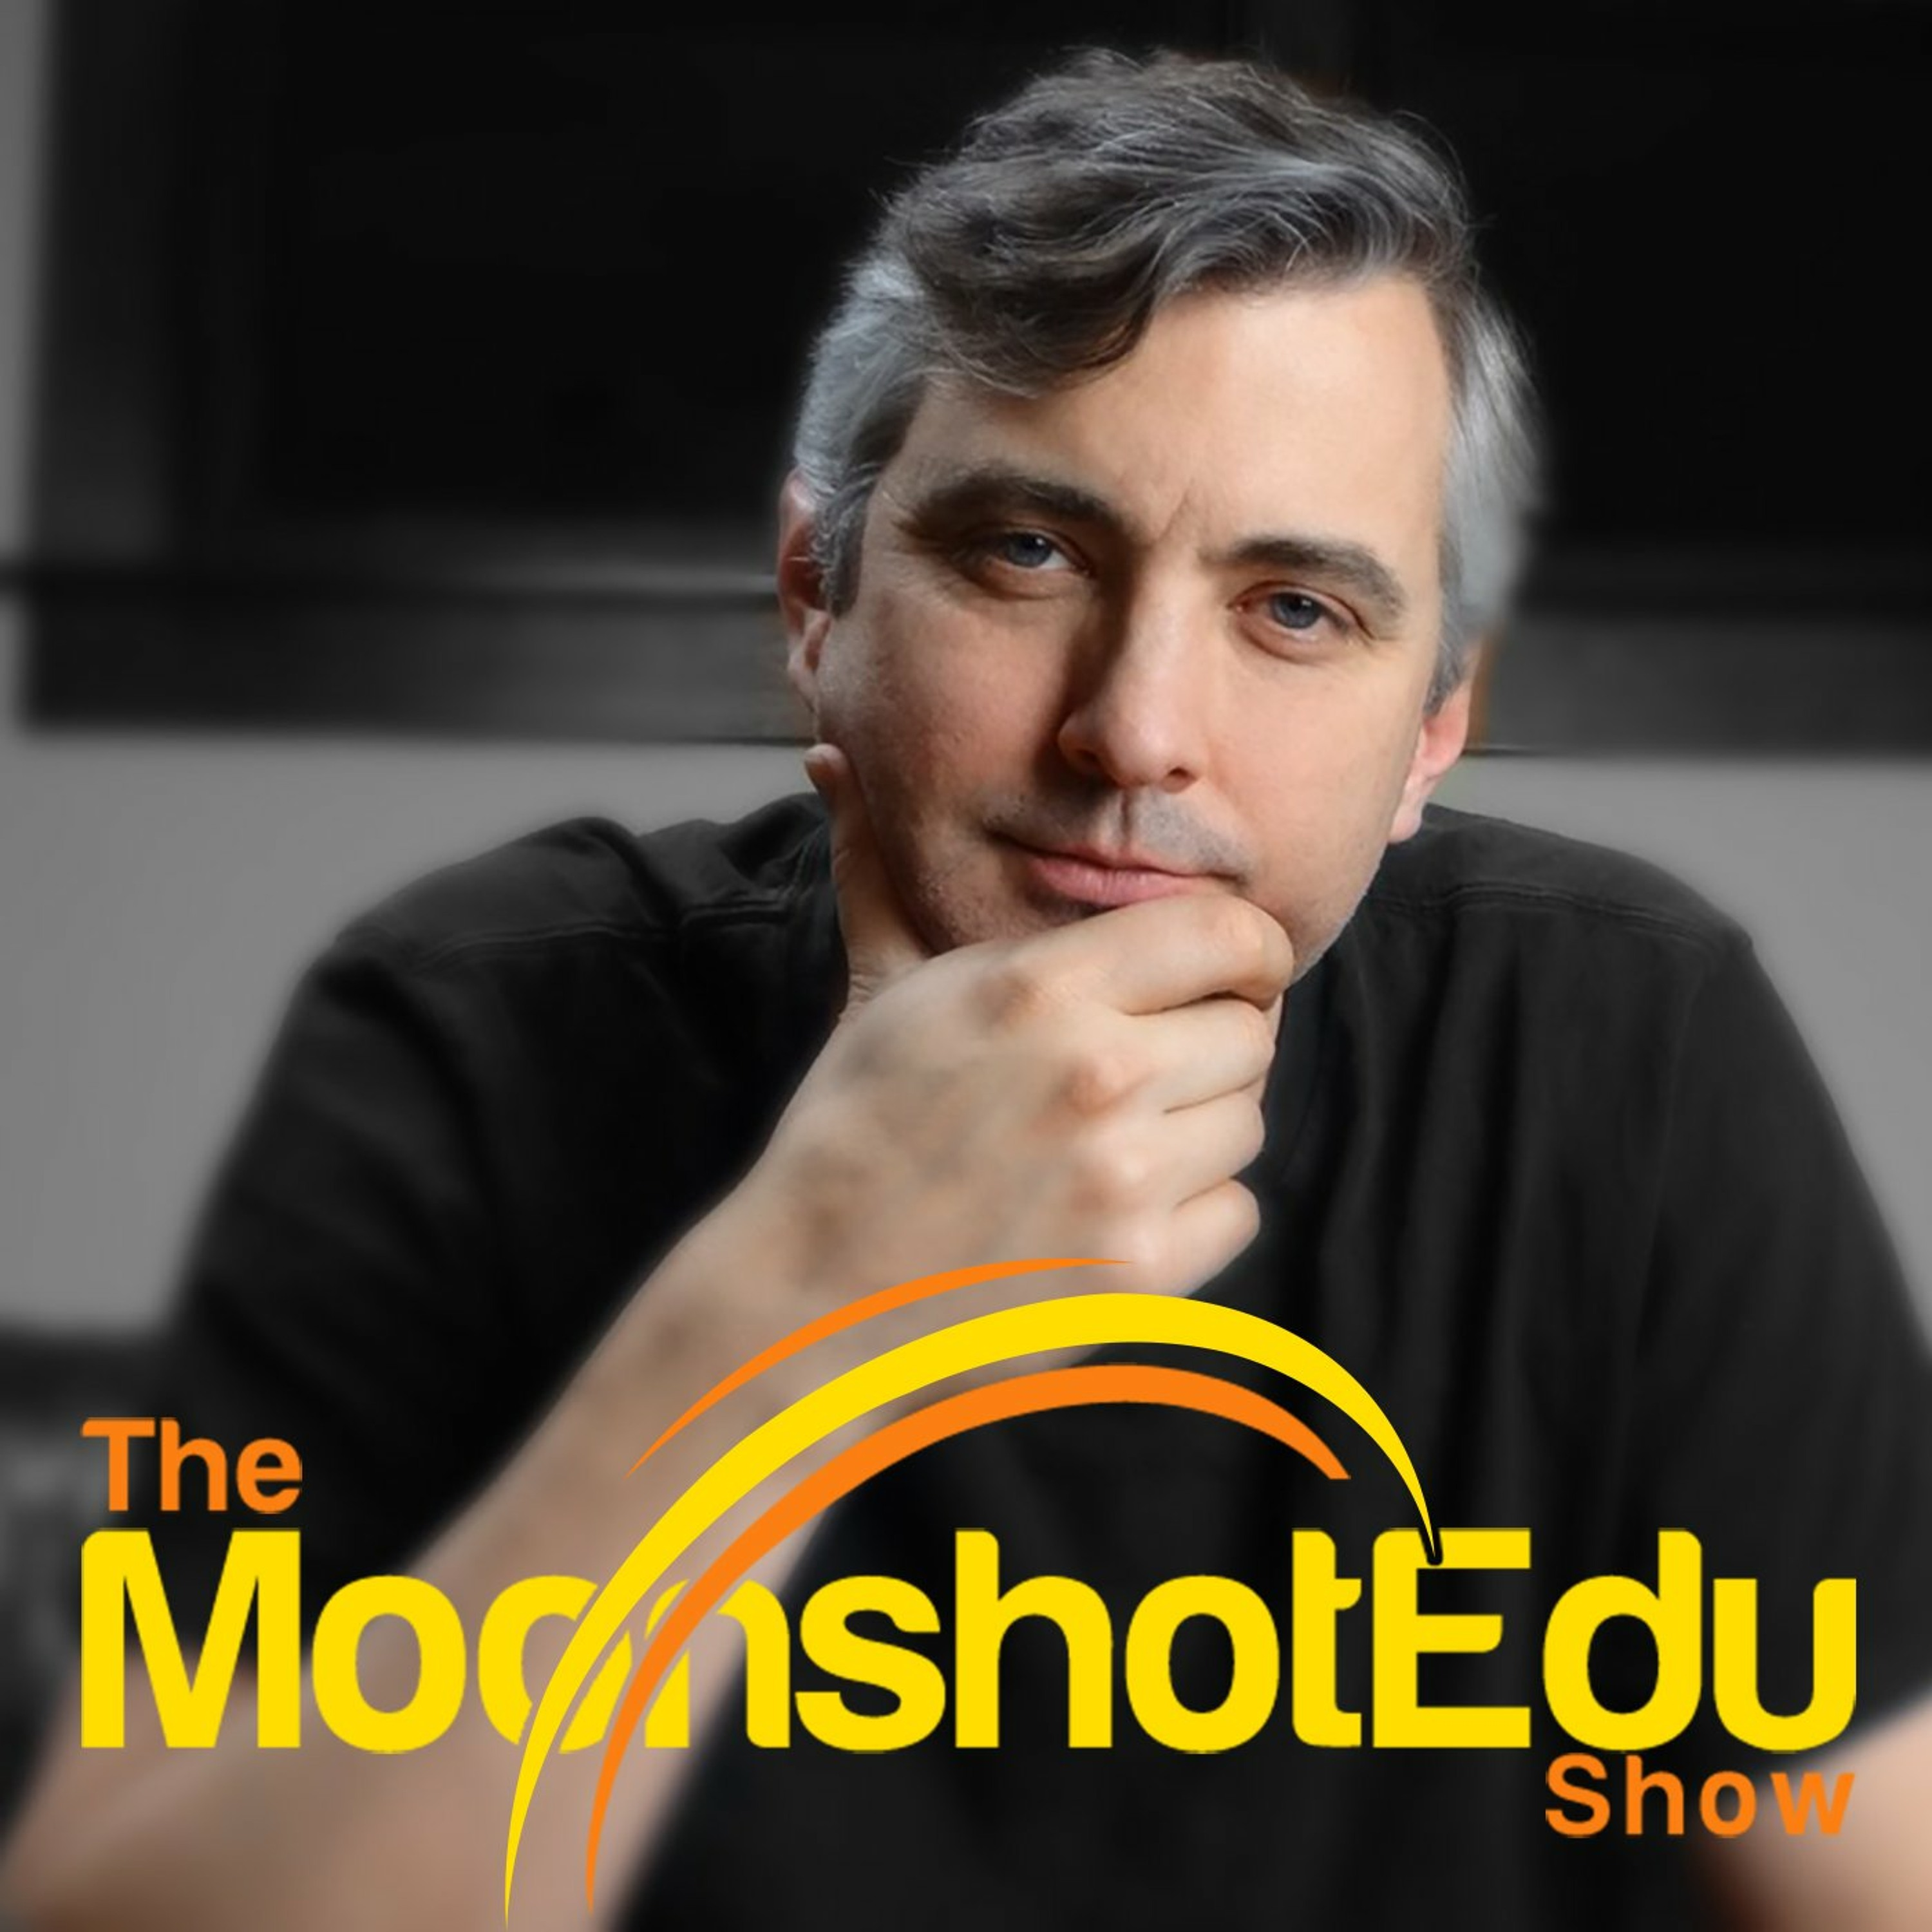 051 - An Interview with Stephen Downes about Open Education and More